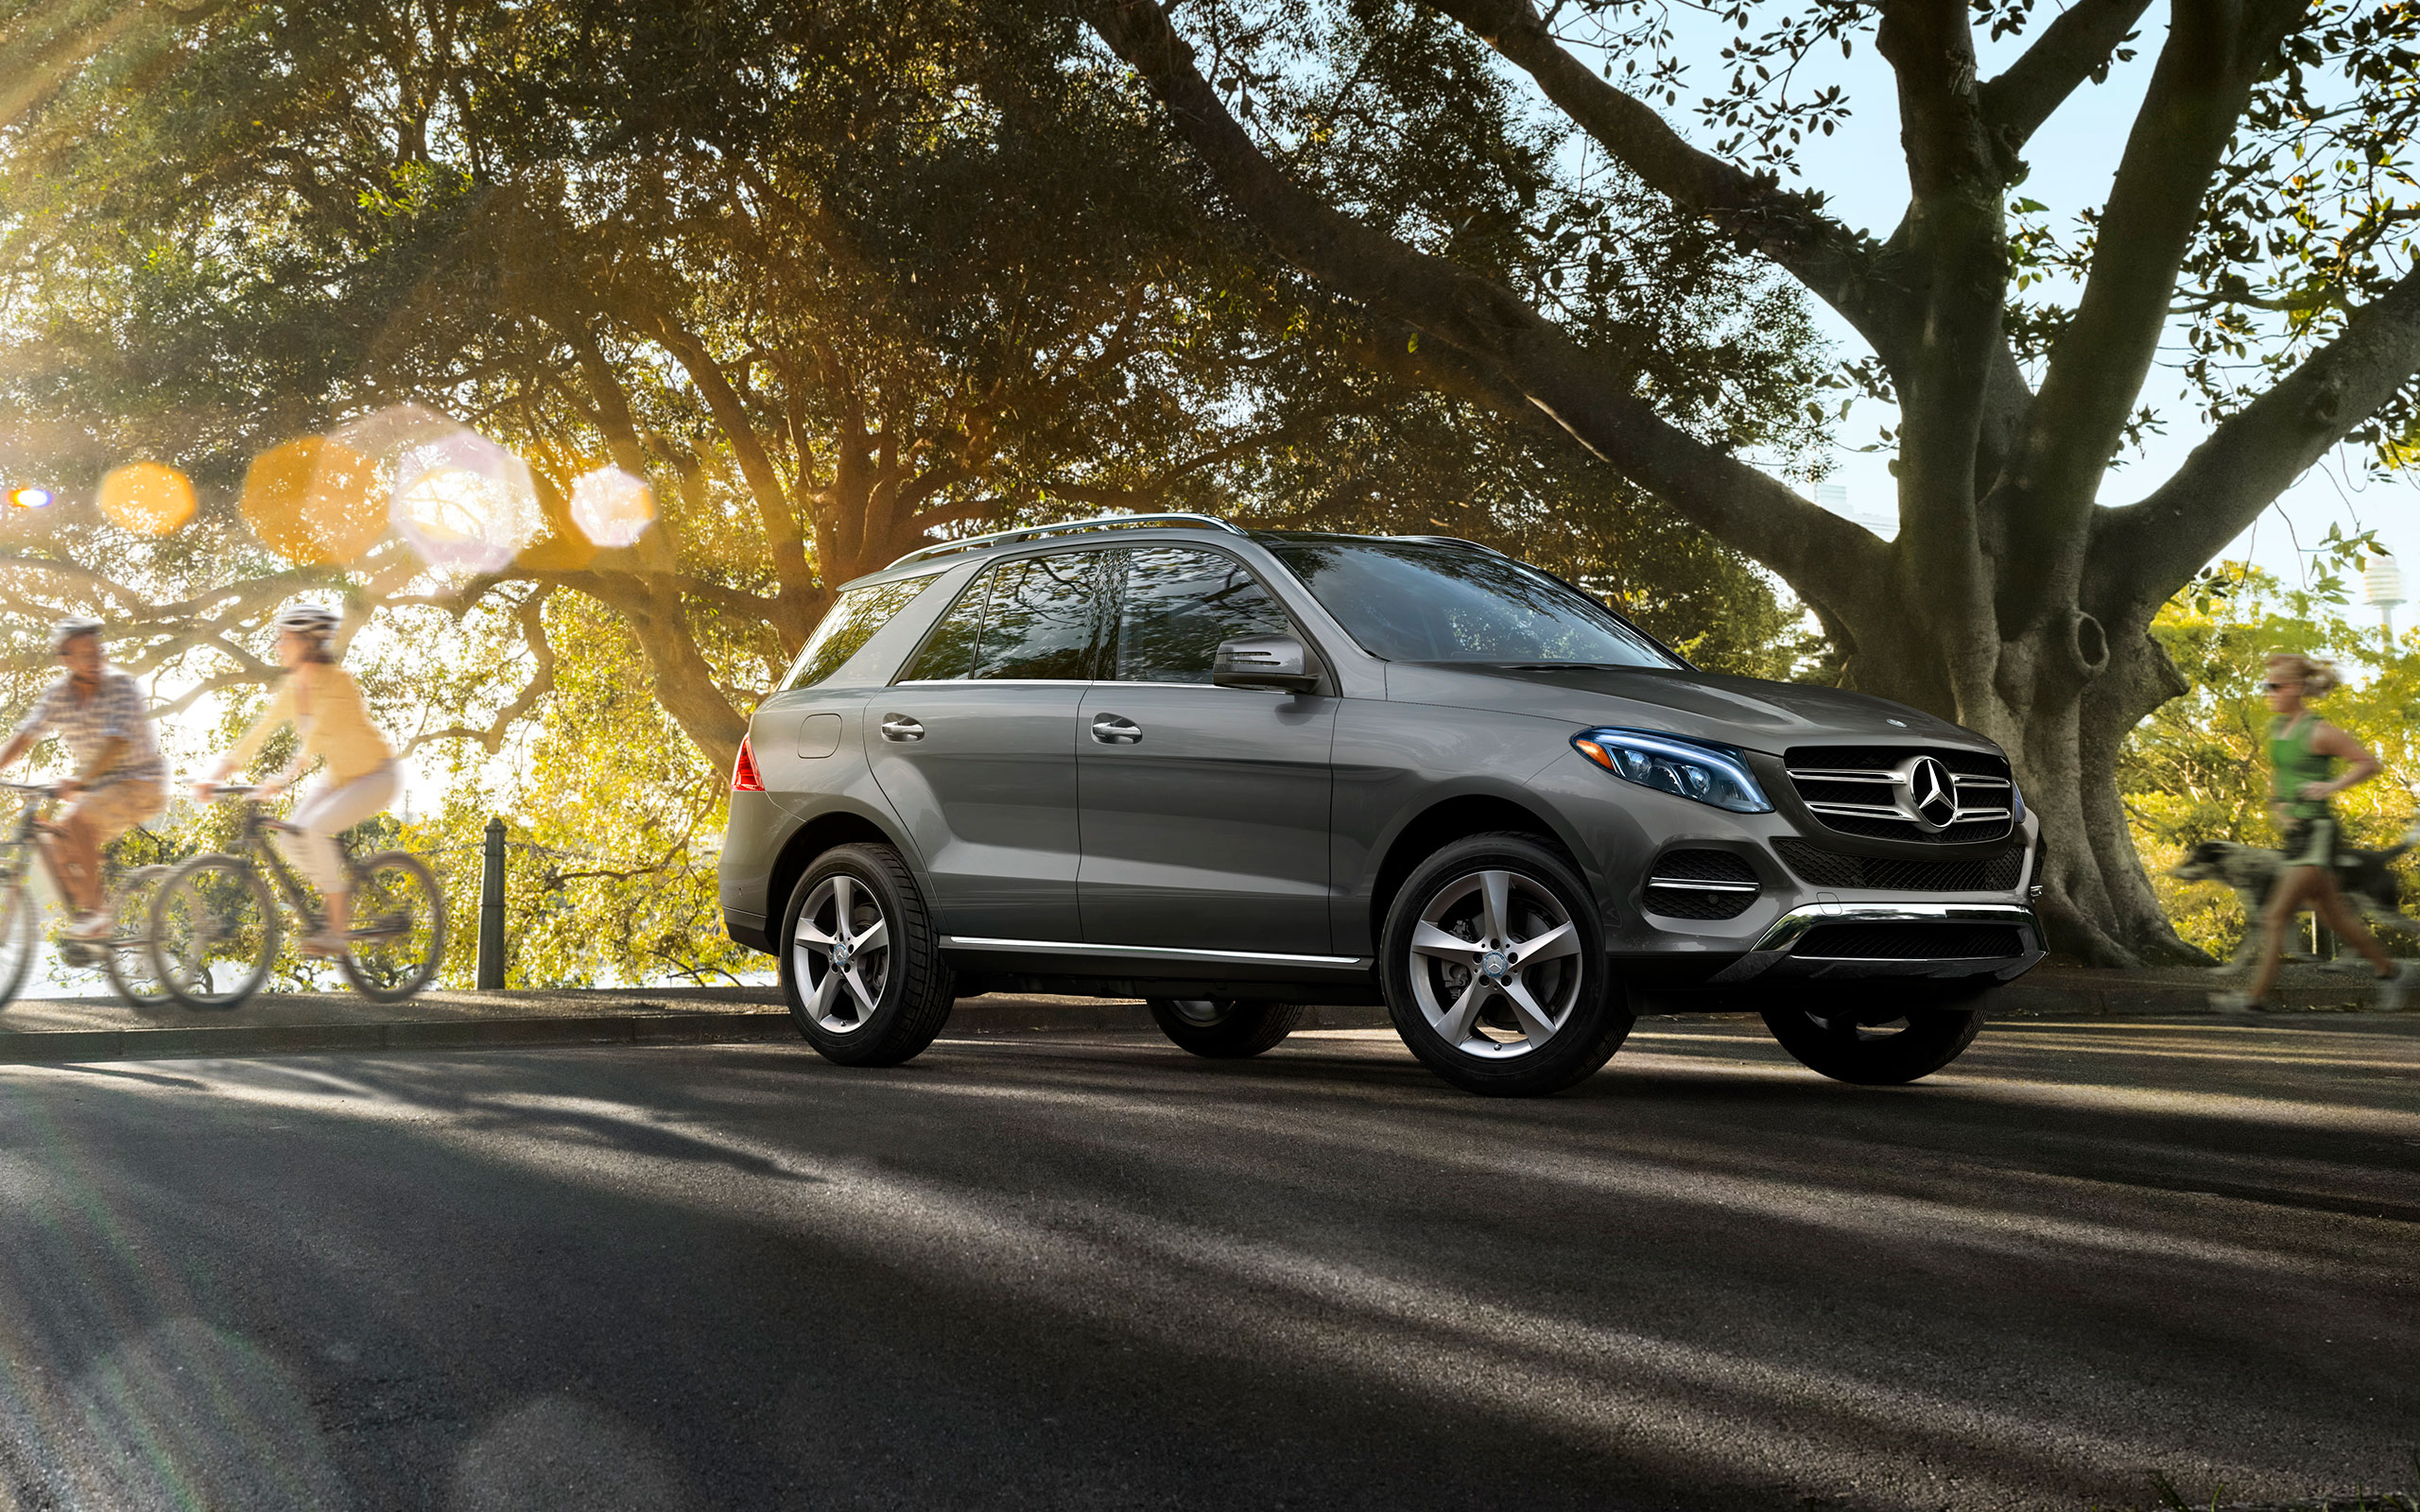 2016 Mercedes GLE350 4MATIC Lease